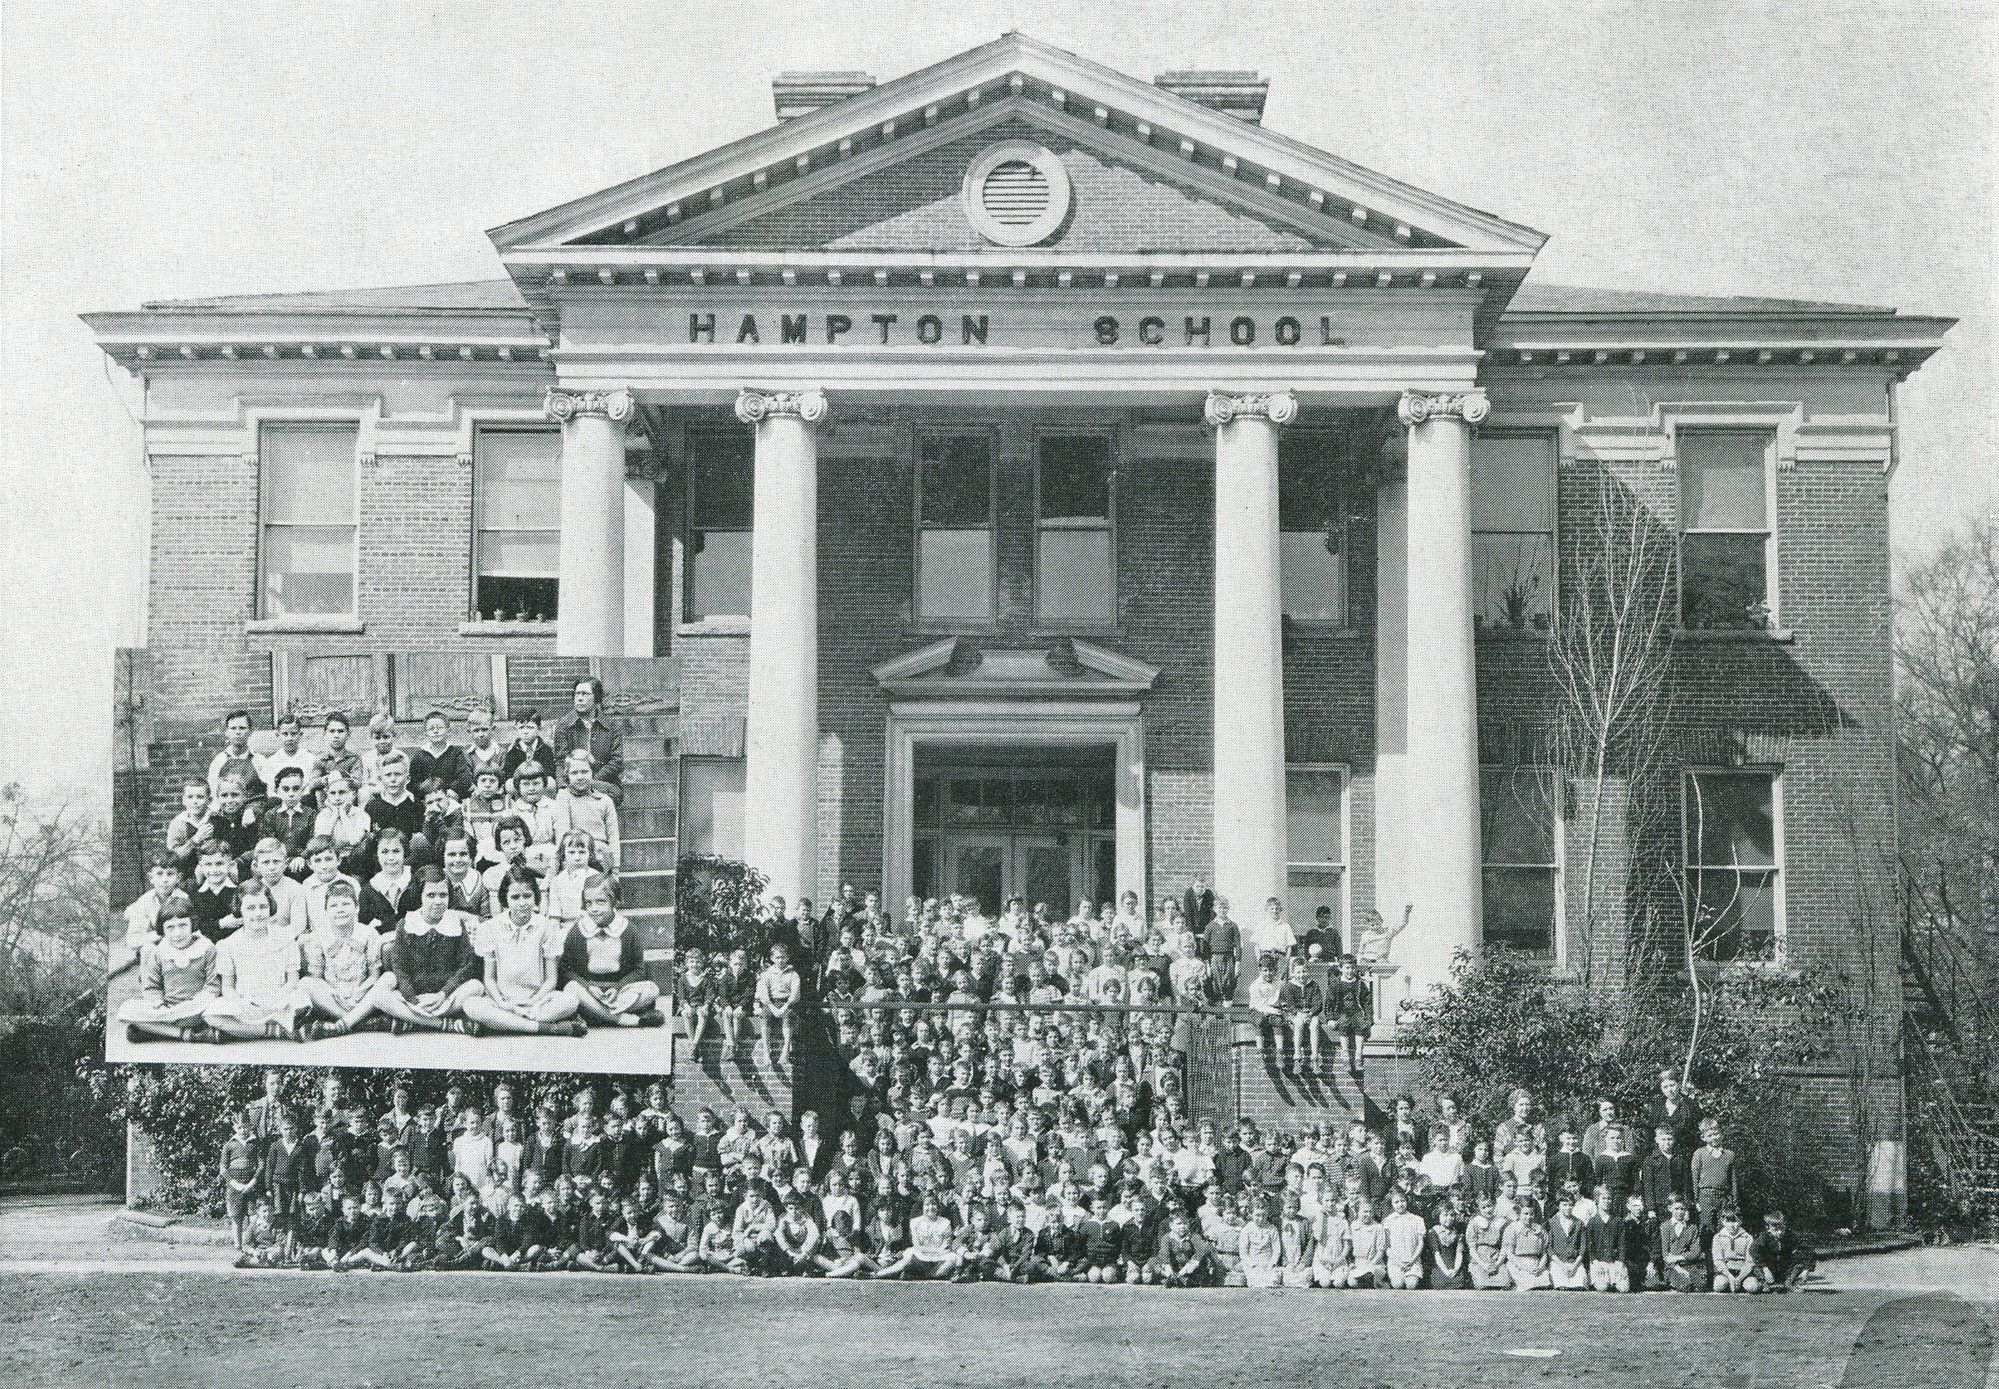 Hampton School's students are all seen in 1936.